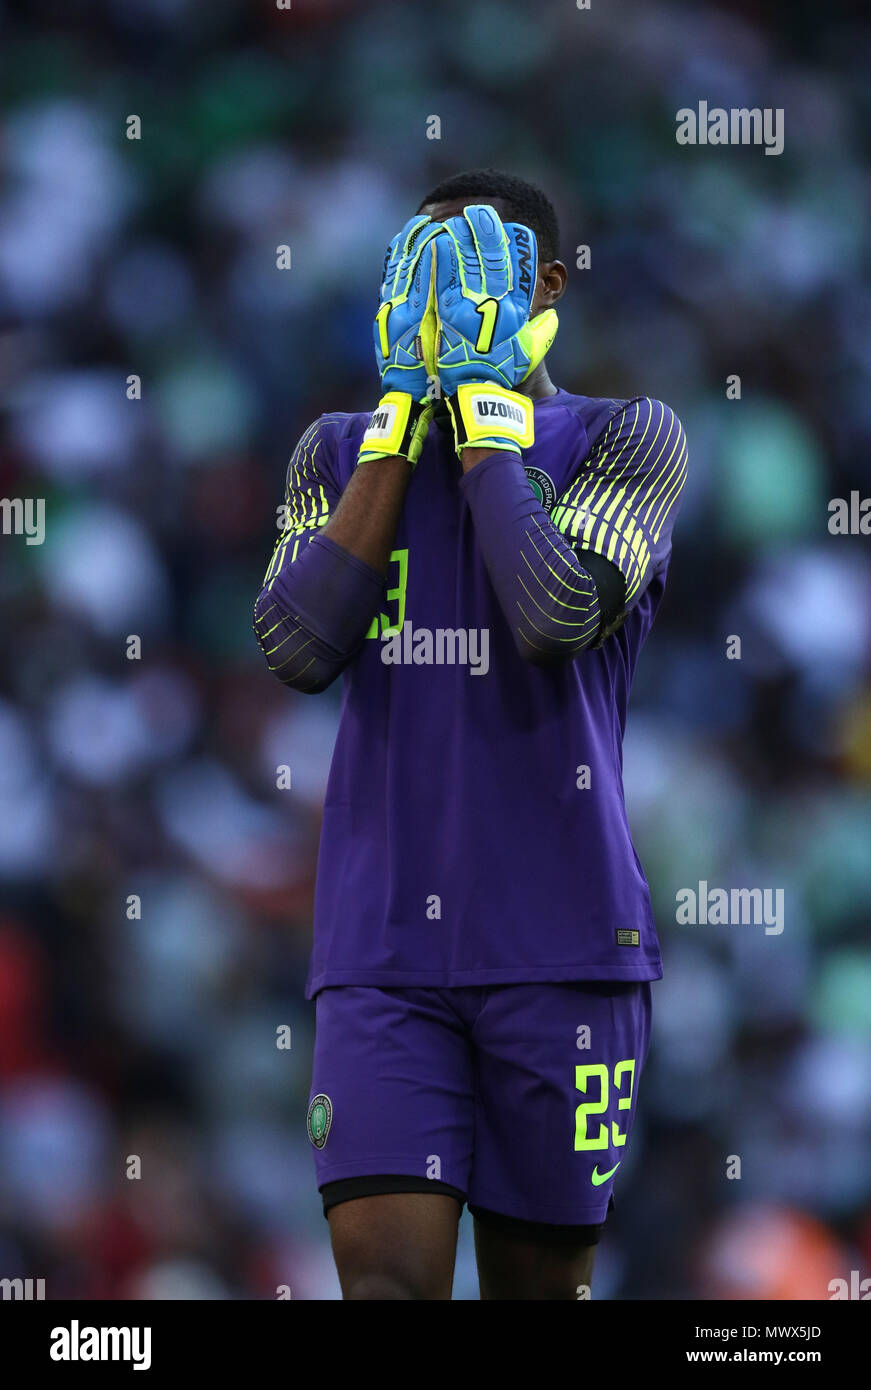 London, UK. 2nd June 2018.Francis Uzoho (N) puts his head in his hands at the England v Nigeria Friendly International match, at Wembley Stadium, on June 2, 2018. **This picture is for editorial use only** Credit: Paul Marriott/Alamy Live News Stock Photo